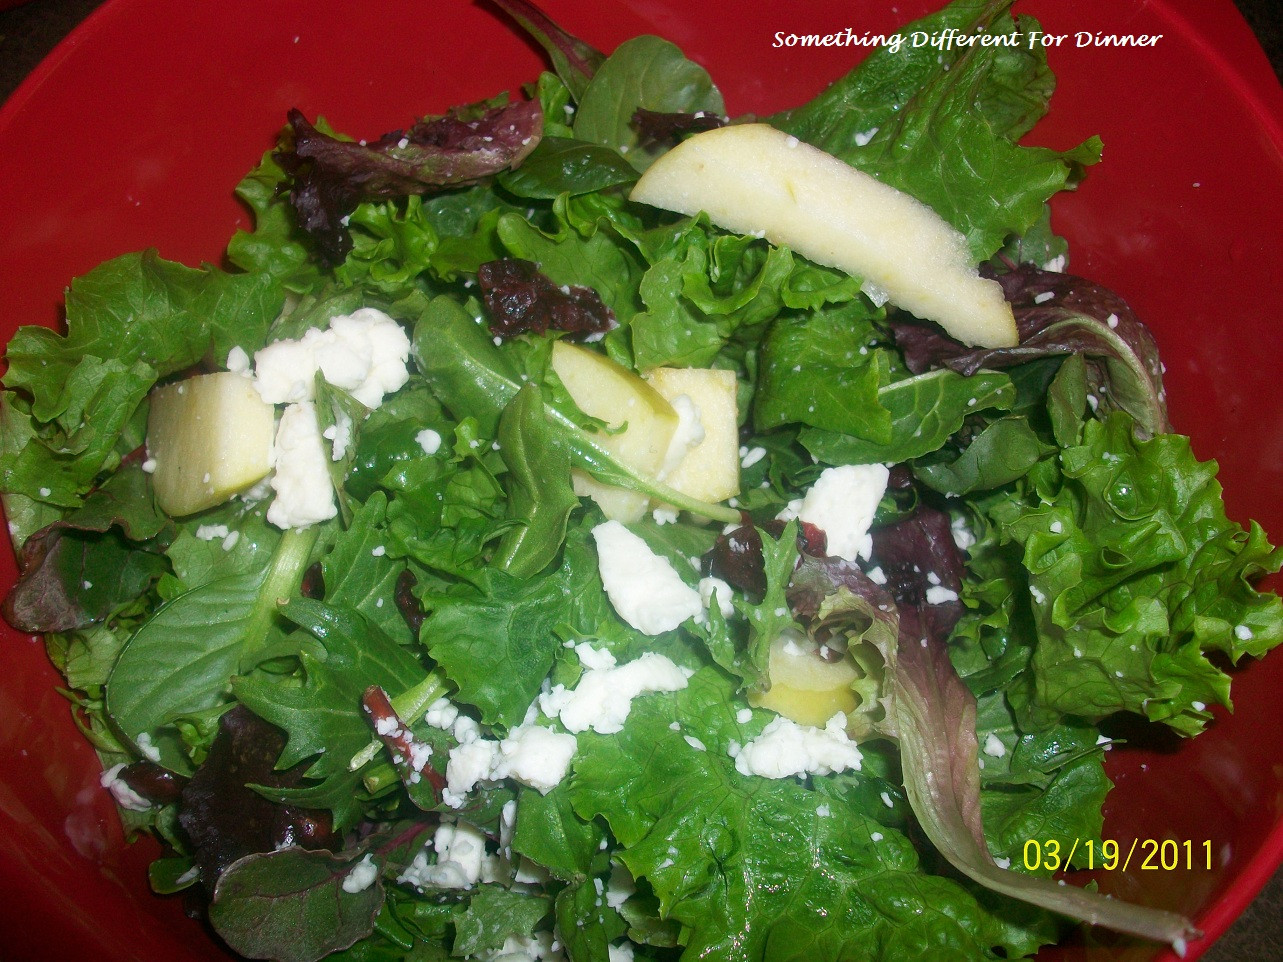 Something Different For Dinner  Something Different For Dinner 50 50 Salad w fuji apples